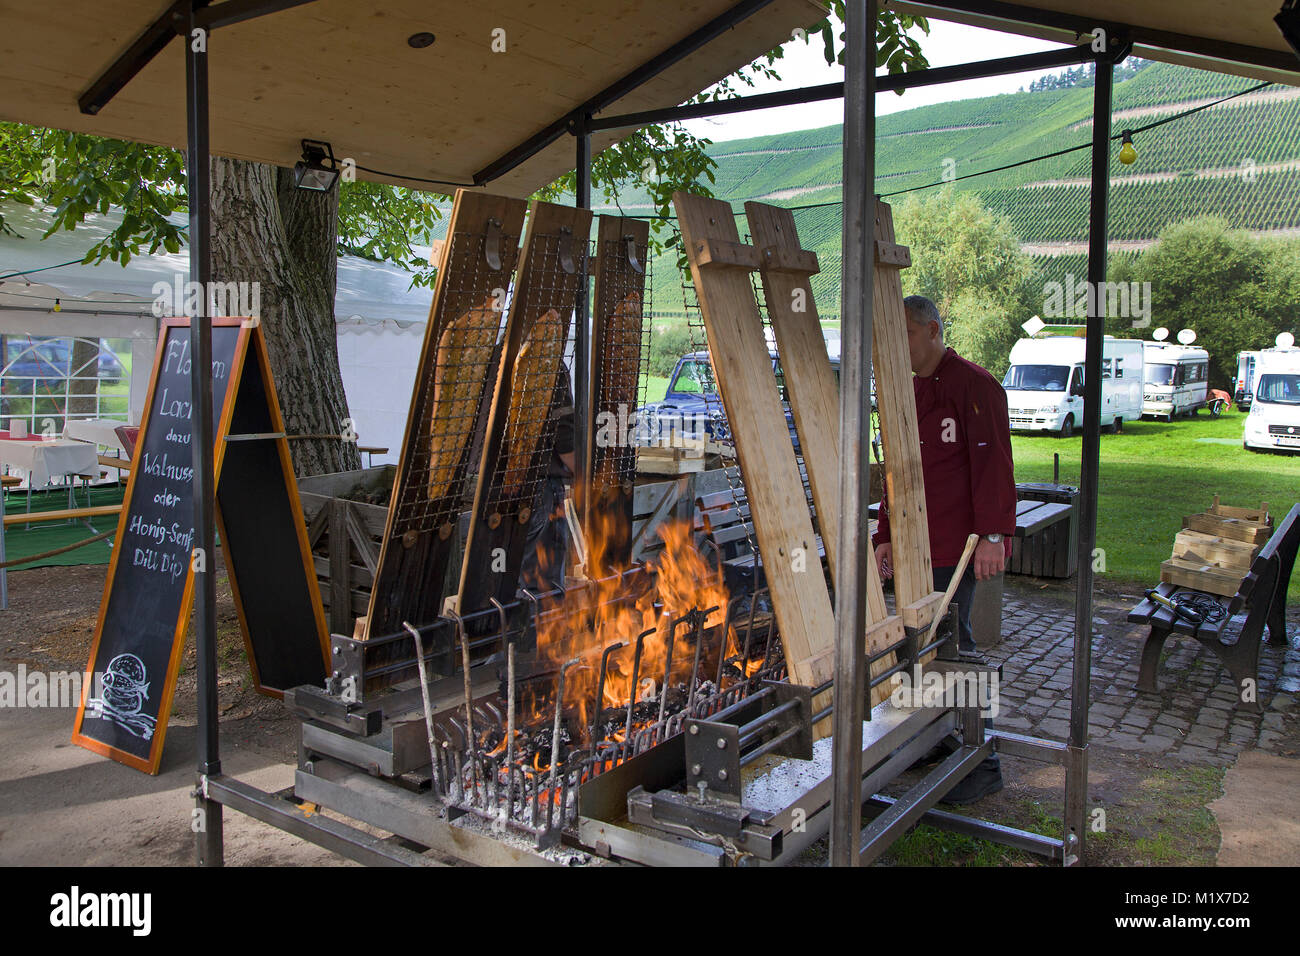 Flamed salmon at a food stall, wine festival at Brauneberg, Moselle river, Rhineland-Palatinate, Germany, Europe - Stock Image